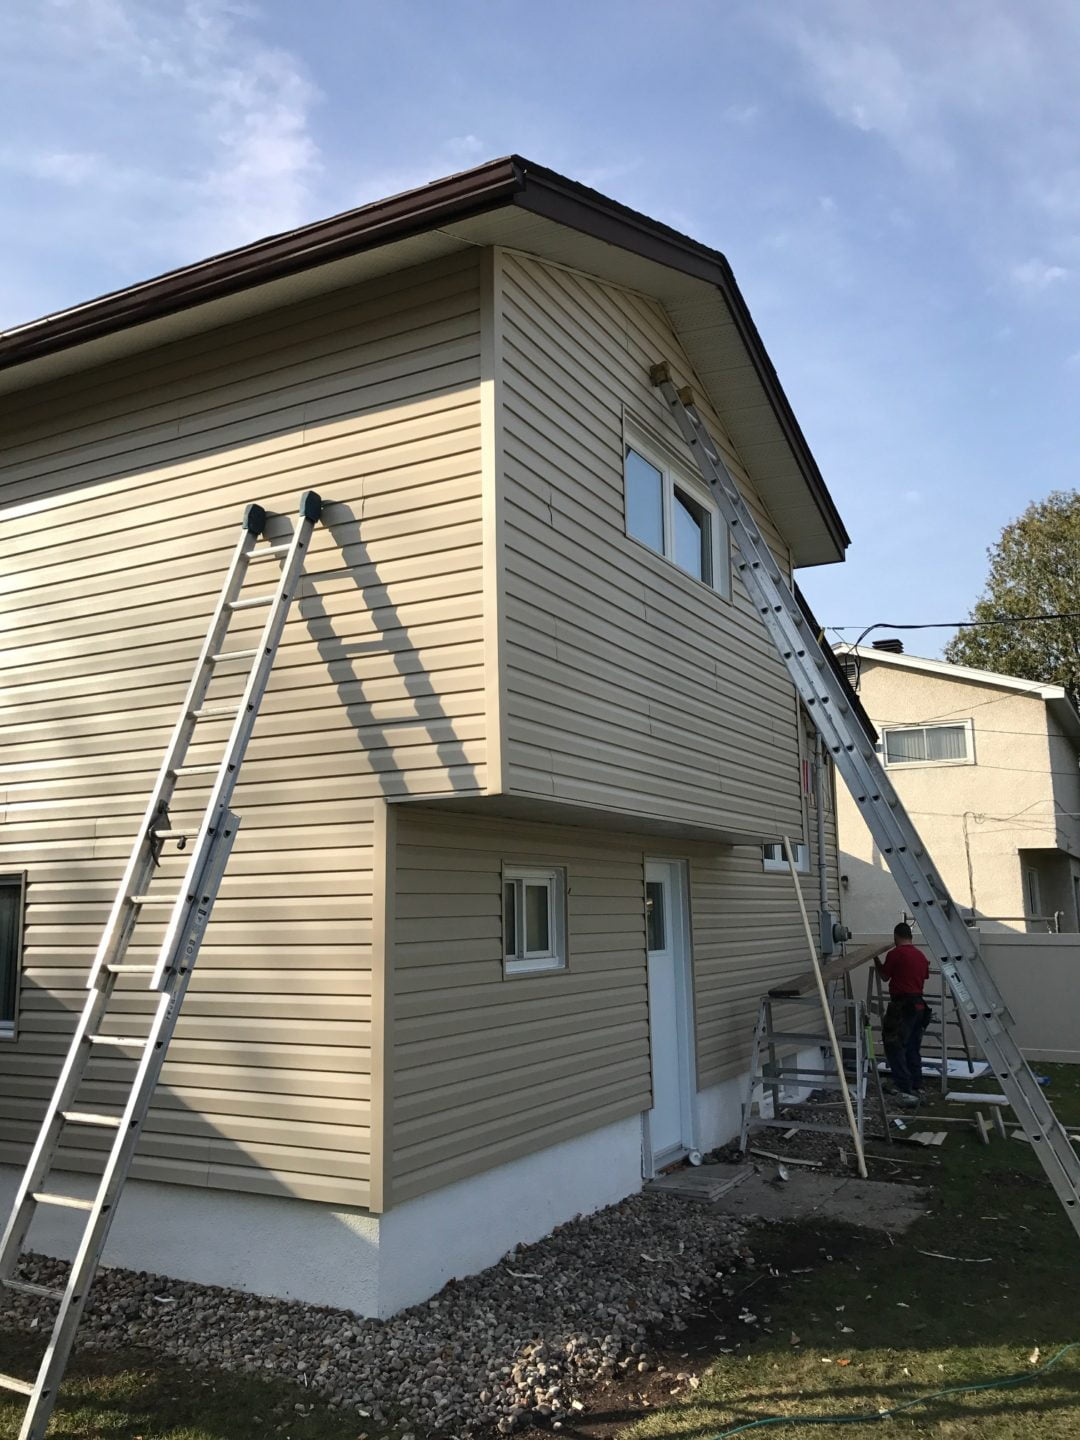 Fall Facelift in Elmvale Acres: Vinyl Siding